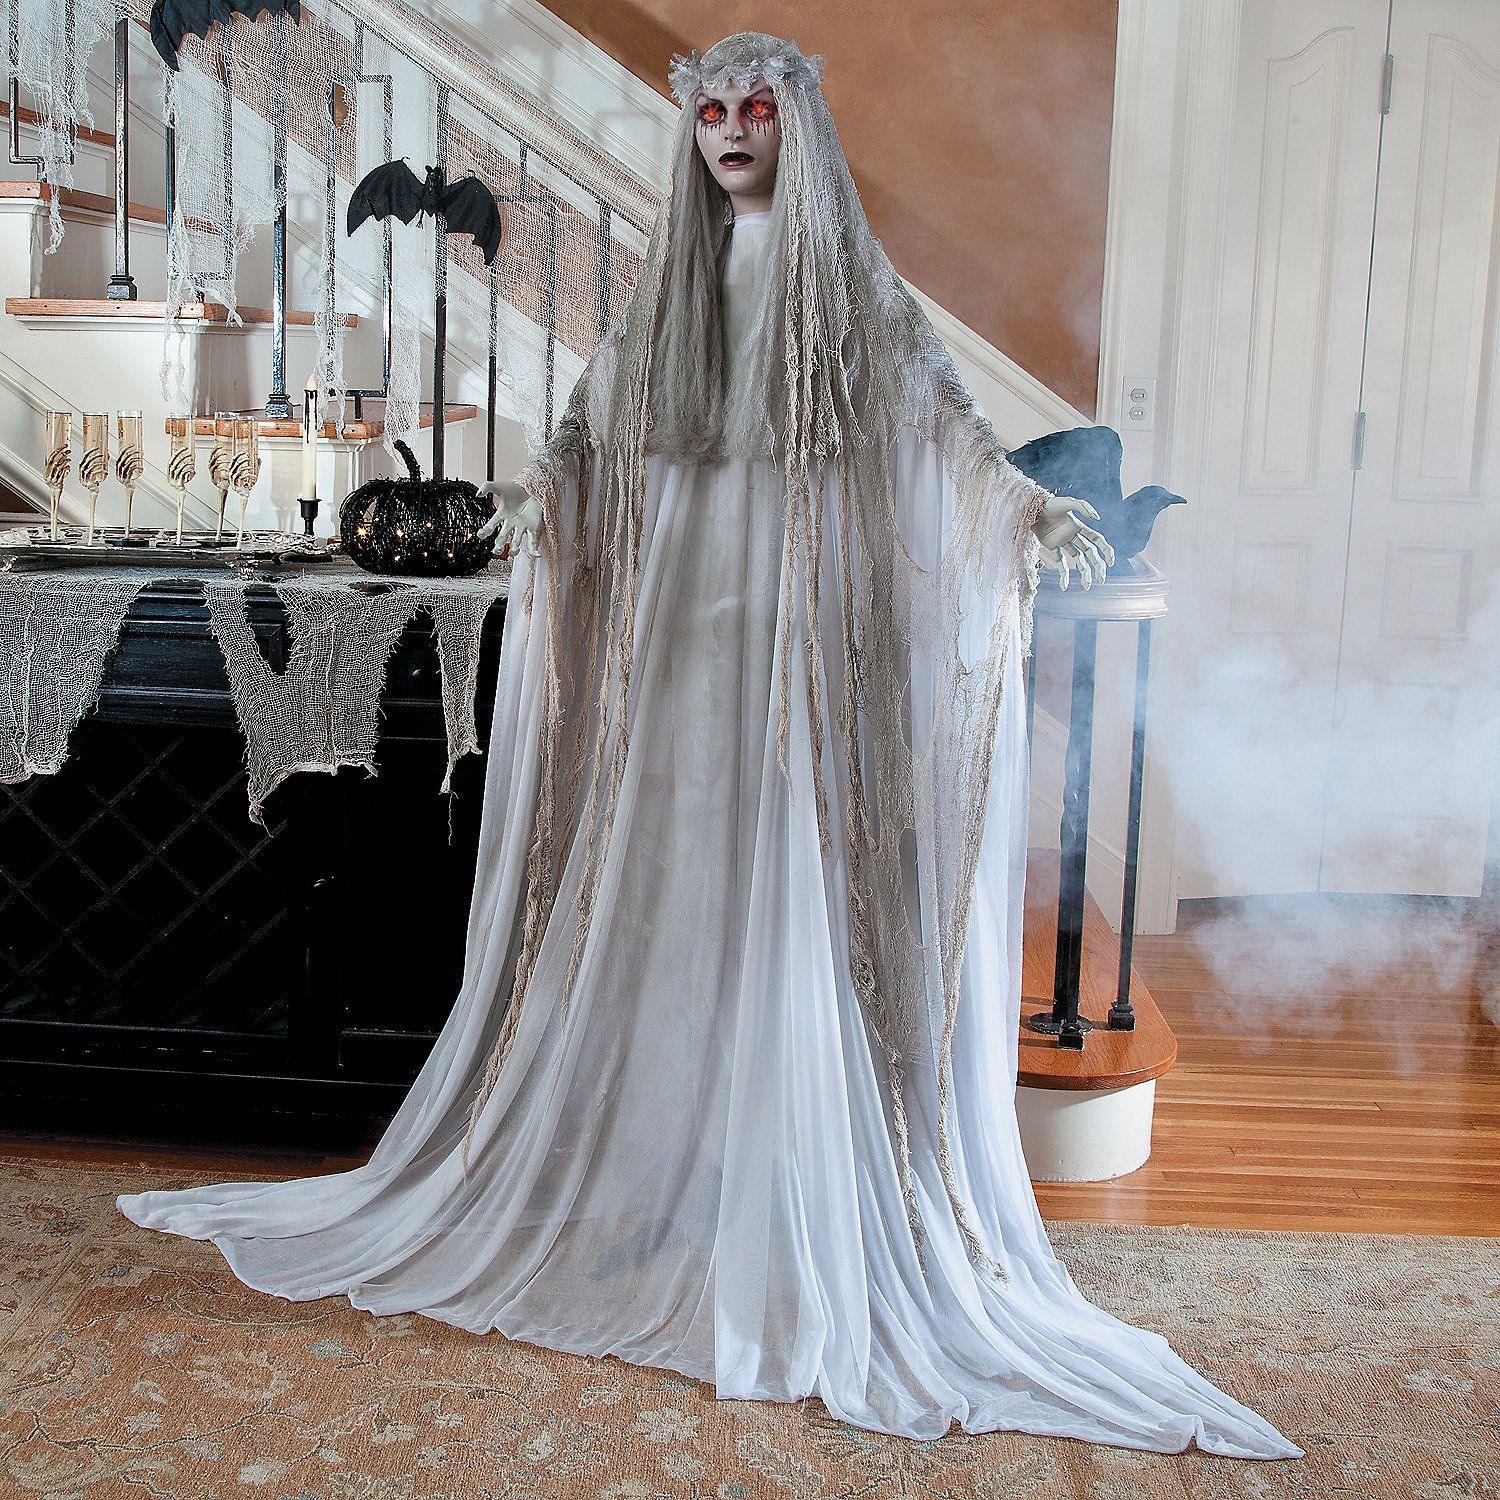 Bewitching Beauty - TerrysVillagelove her Just wish they eyes - scary halloween decor